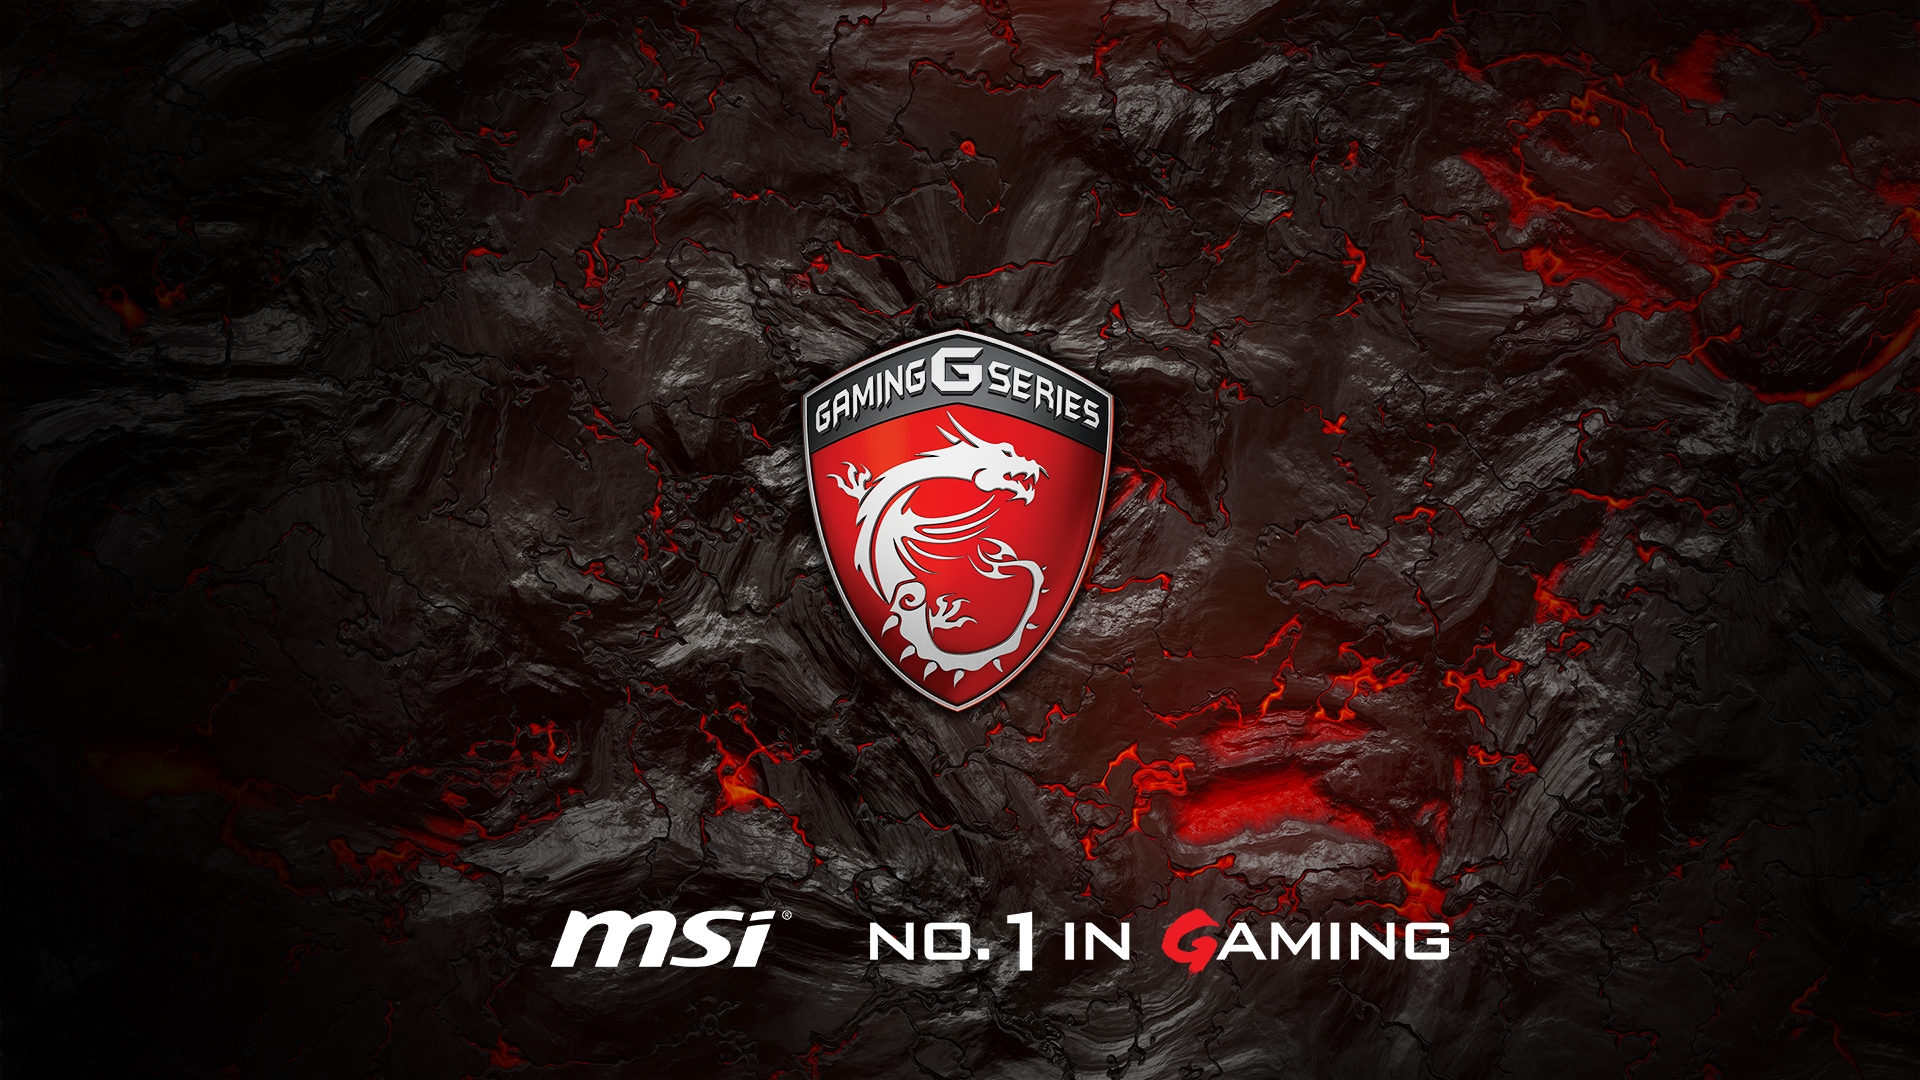 MSI releases 4 Gaming Laptops integrated with Nvidia GeForce GTX 10 Graphic Cards in India